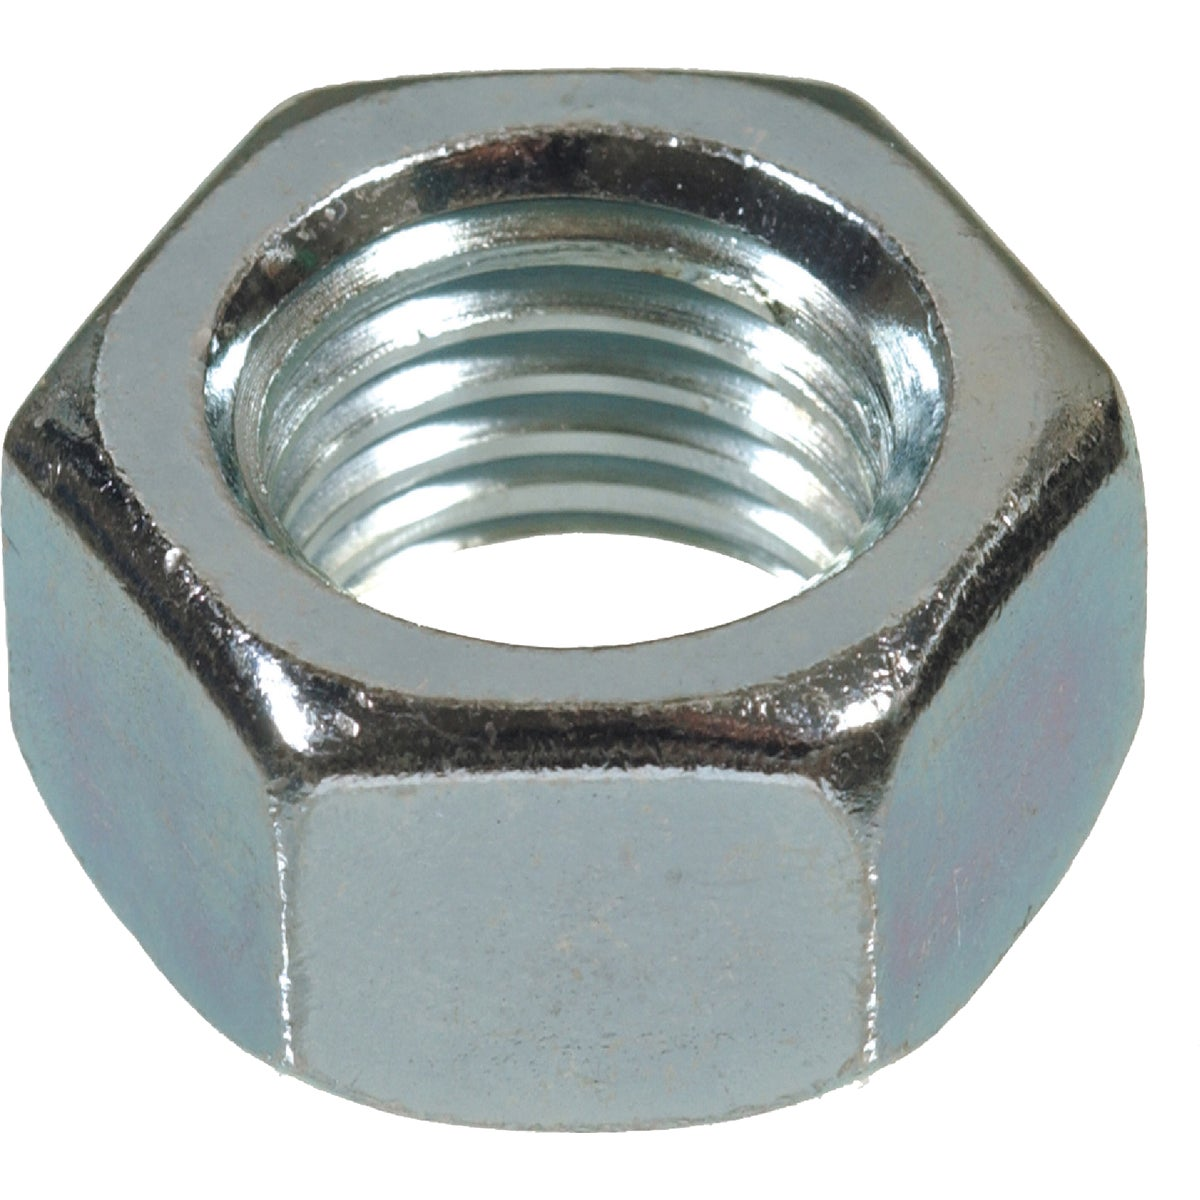 3/8-16 MACHINE SCREW NUT